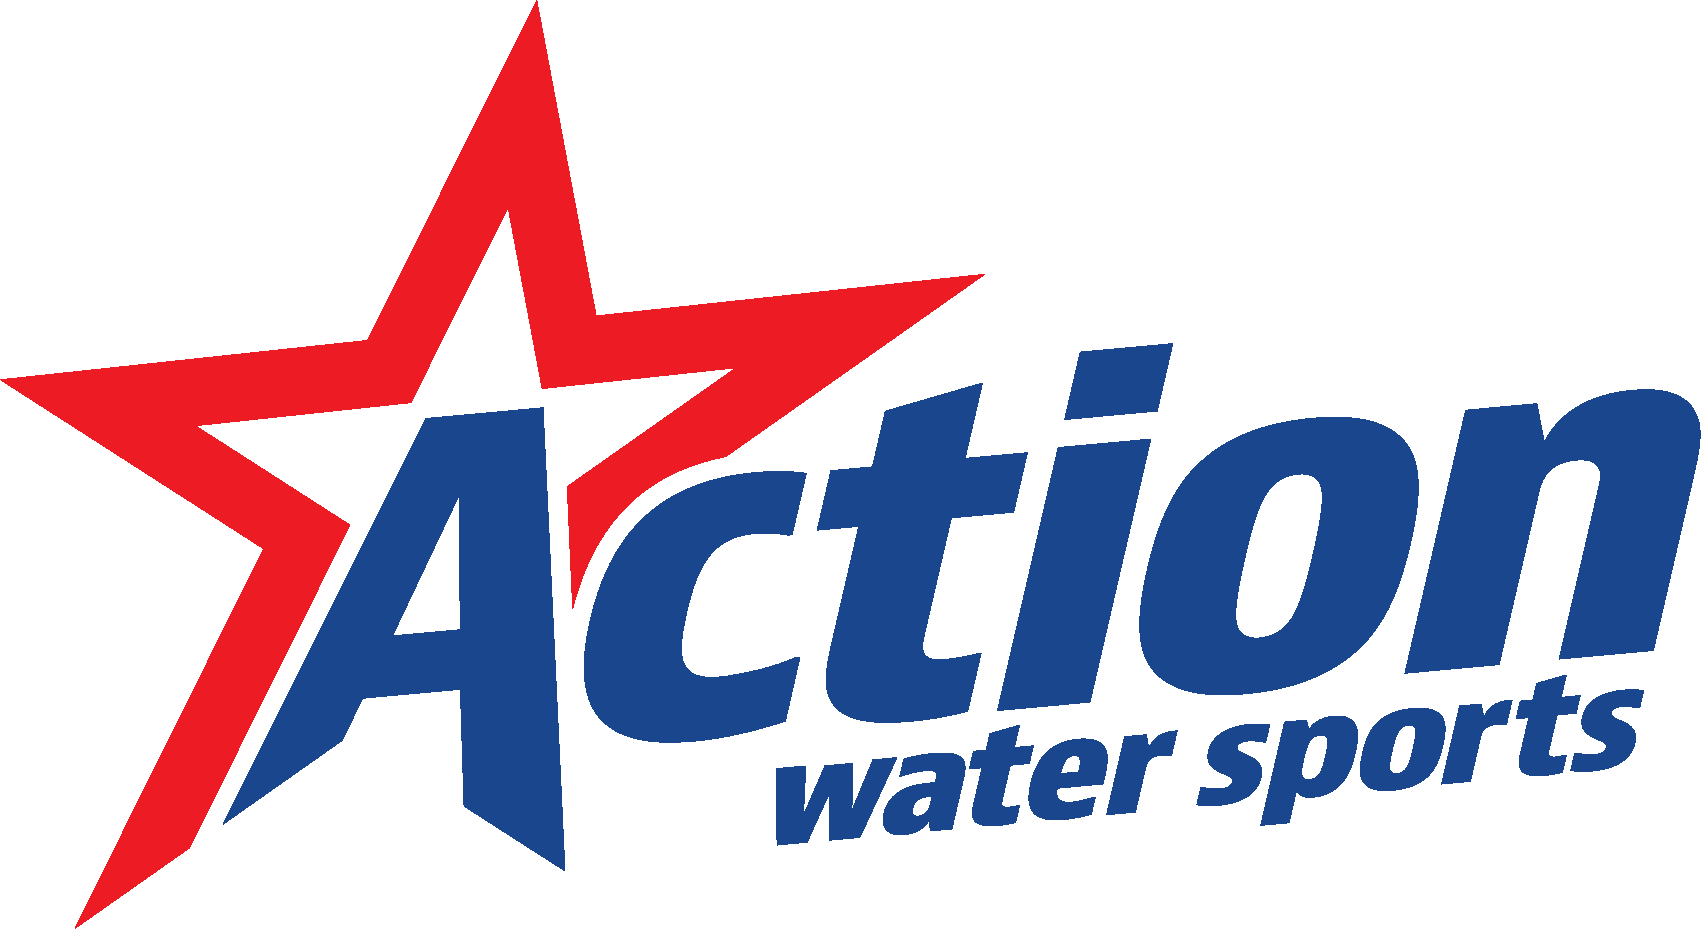 Action Water Sports Central Florida - Action Water Sports Central Florida logo